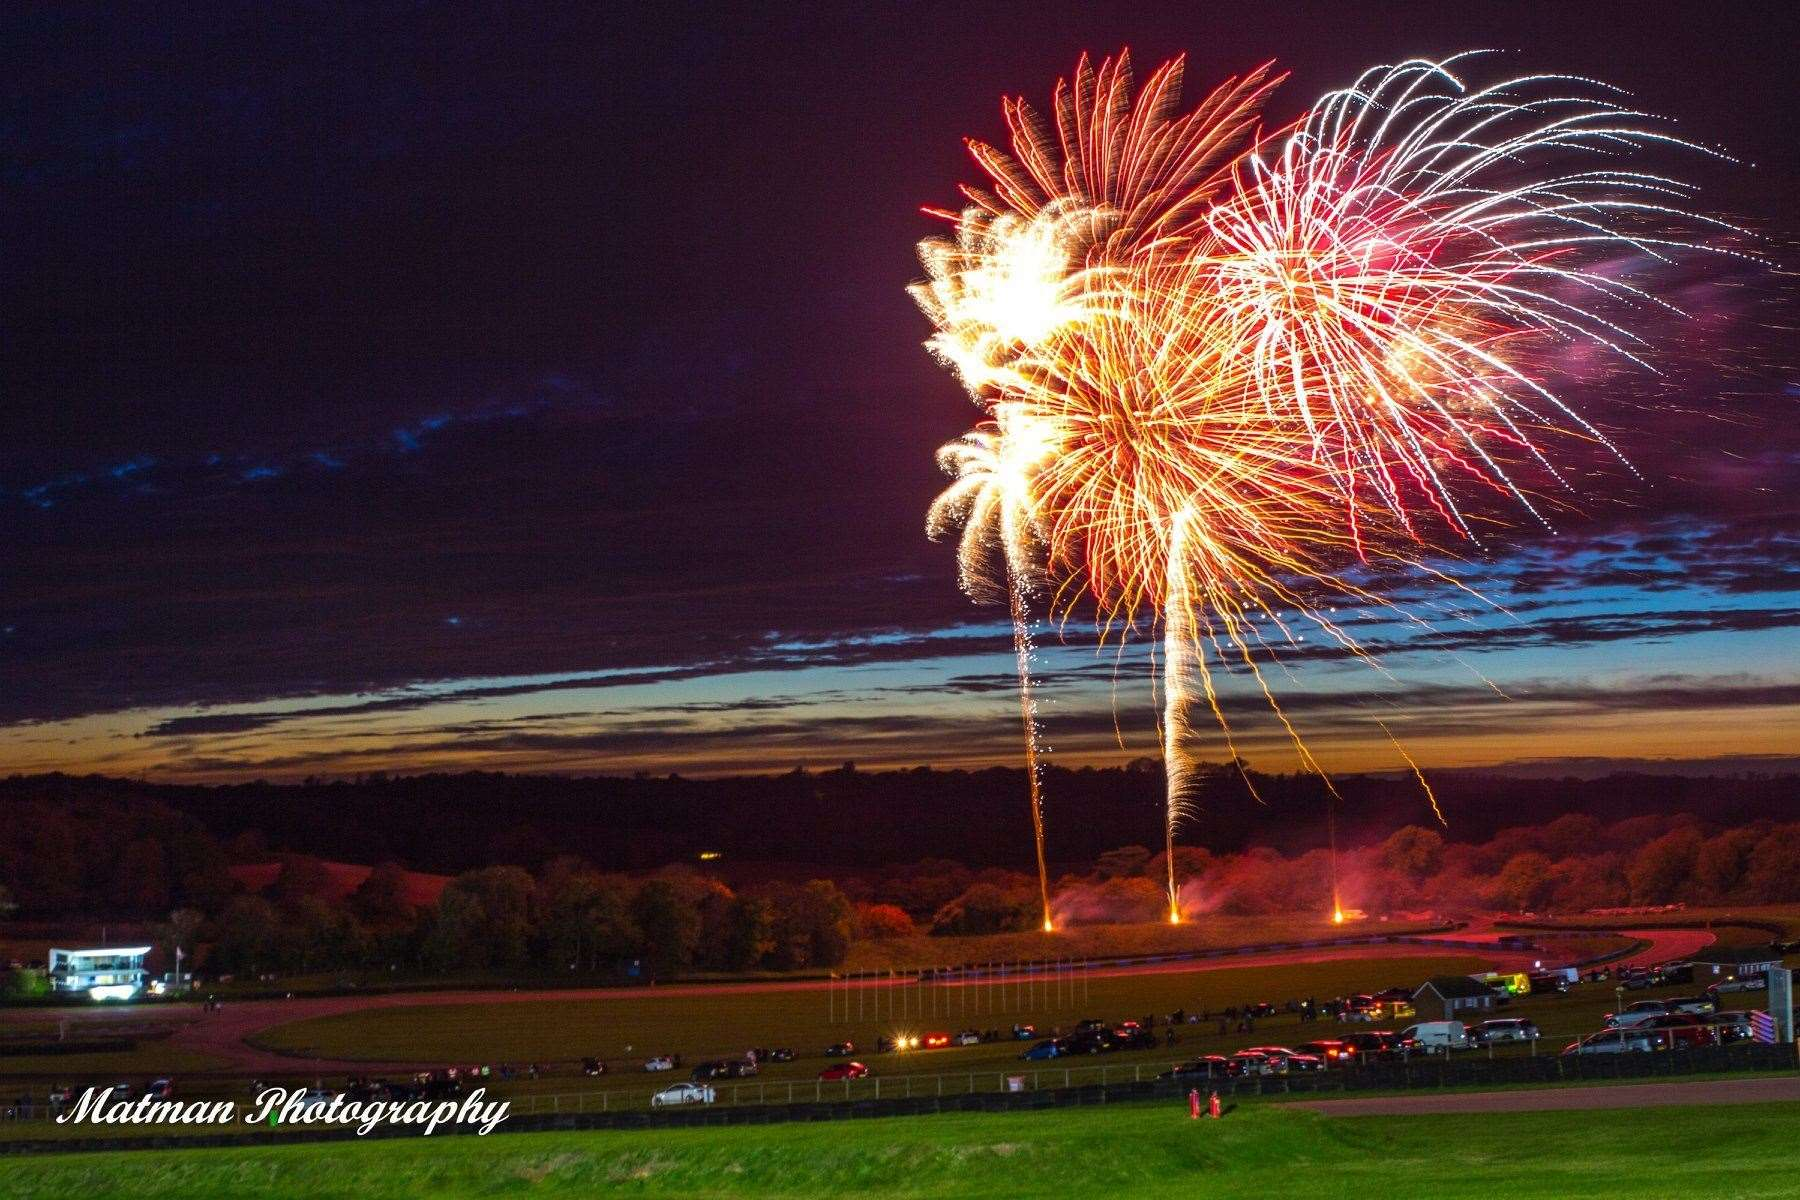 Fireworks at Lydden Hill Race Circuit cancelled for health and saftey  reasons